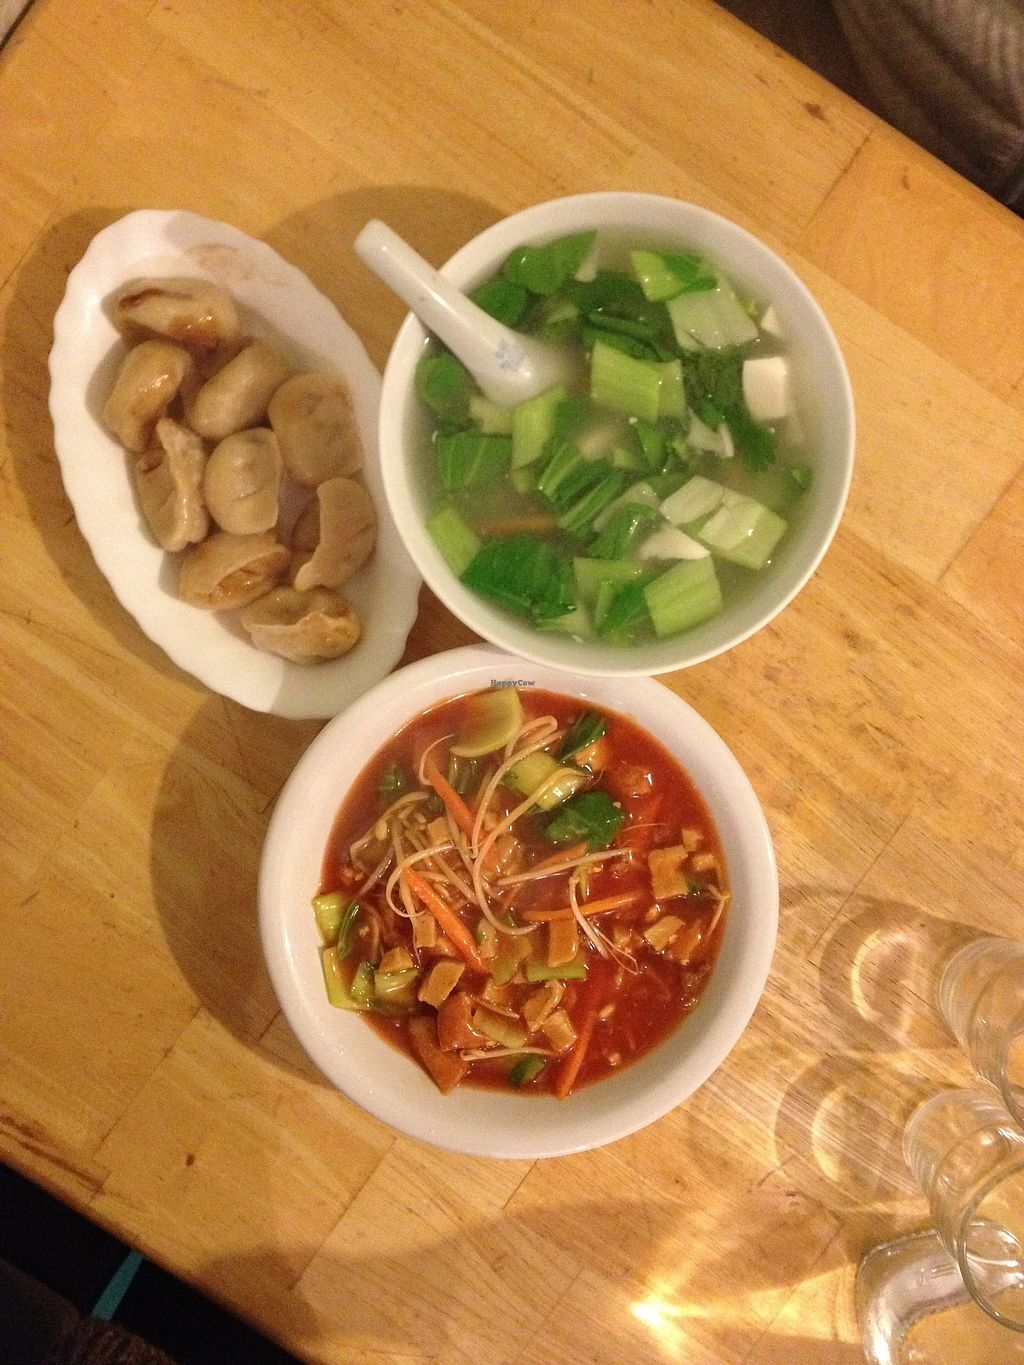 """Photo of Welcome Chinese Vegetarian Food  by <a href=""""/members/profile/Gravenhale"""">Gravenhale</a> <br/>Food at Welcome Chinese <br/> September 7, 2017  - <a href='/contact/abuse/image/414/301732'>Report</a>"""